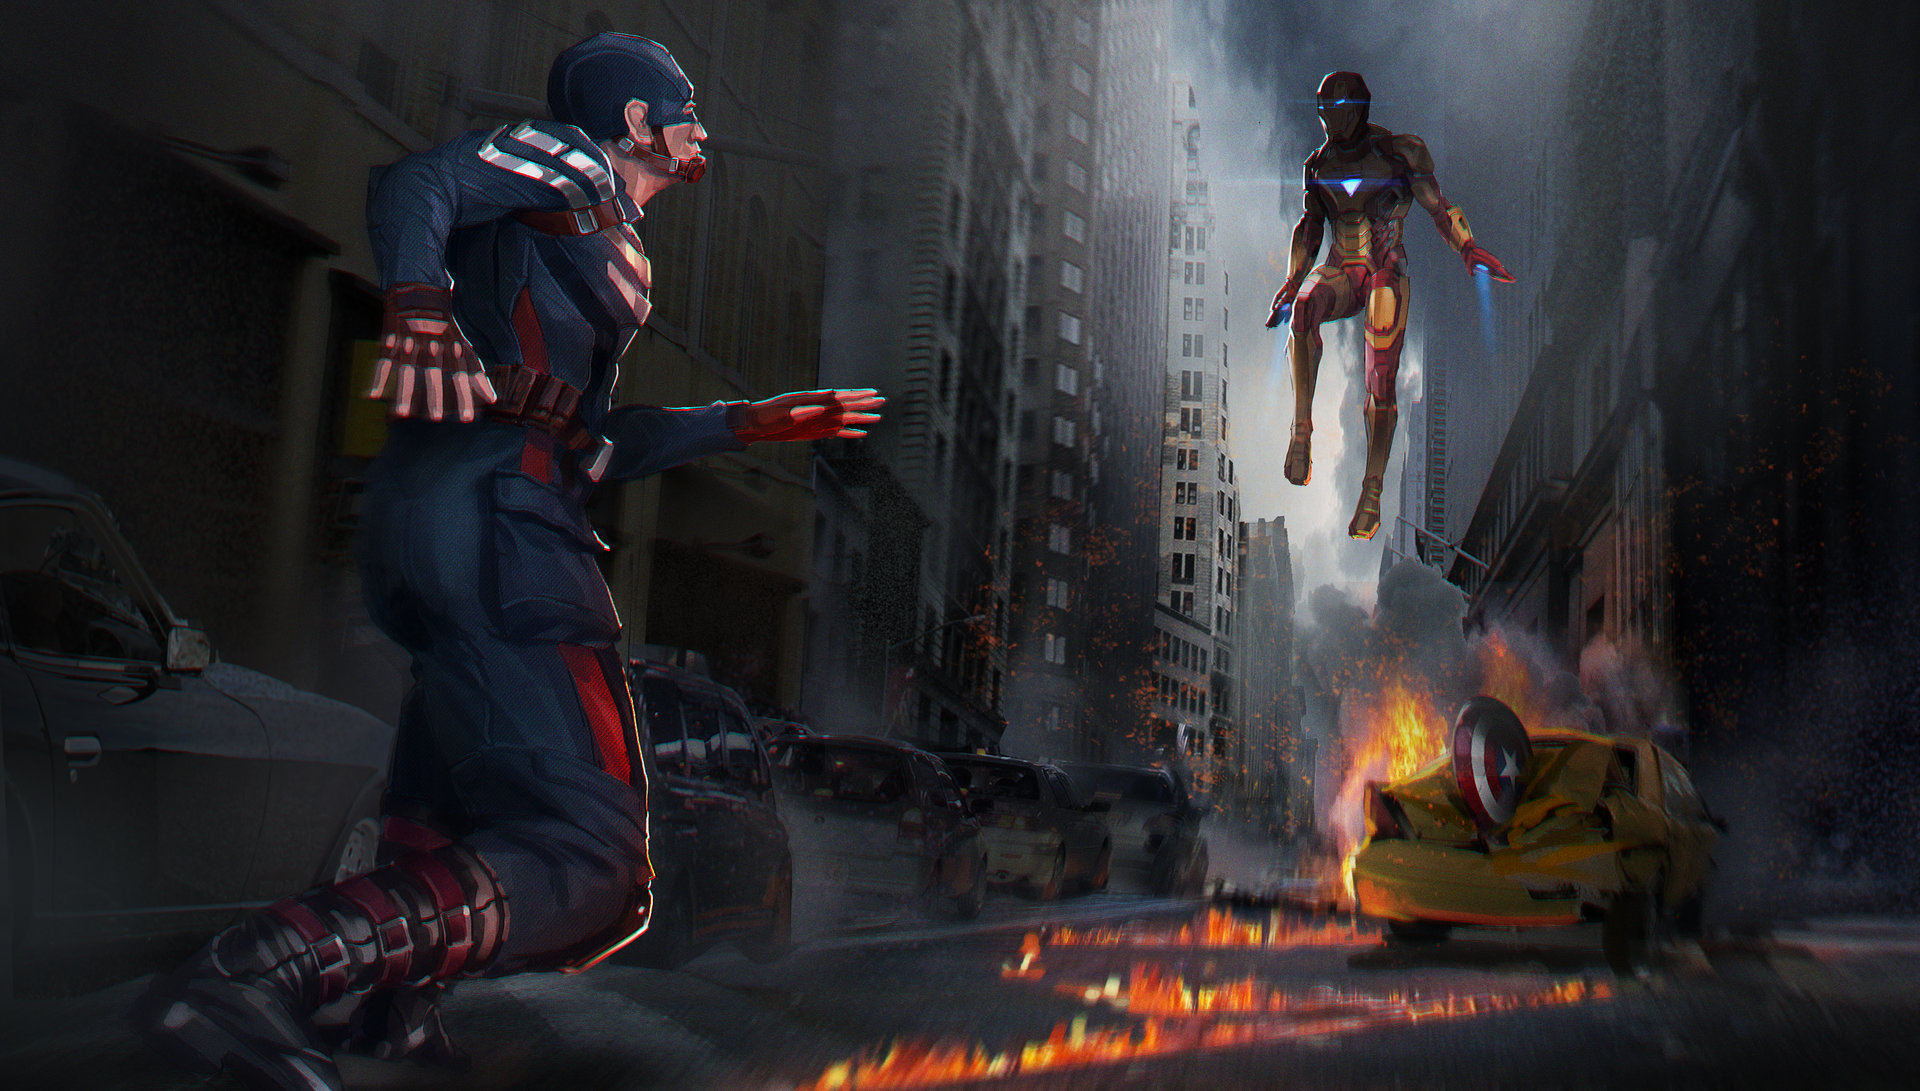 artstation - captain america vs iron man fan art, bo li